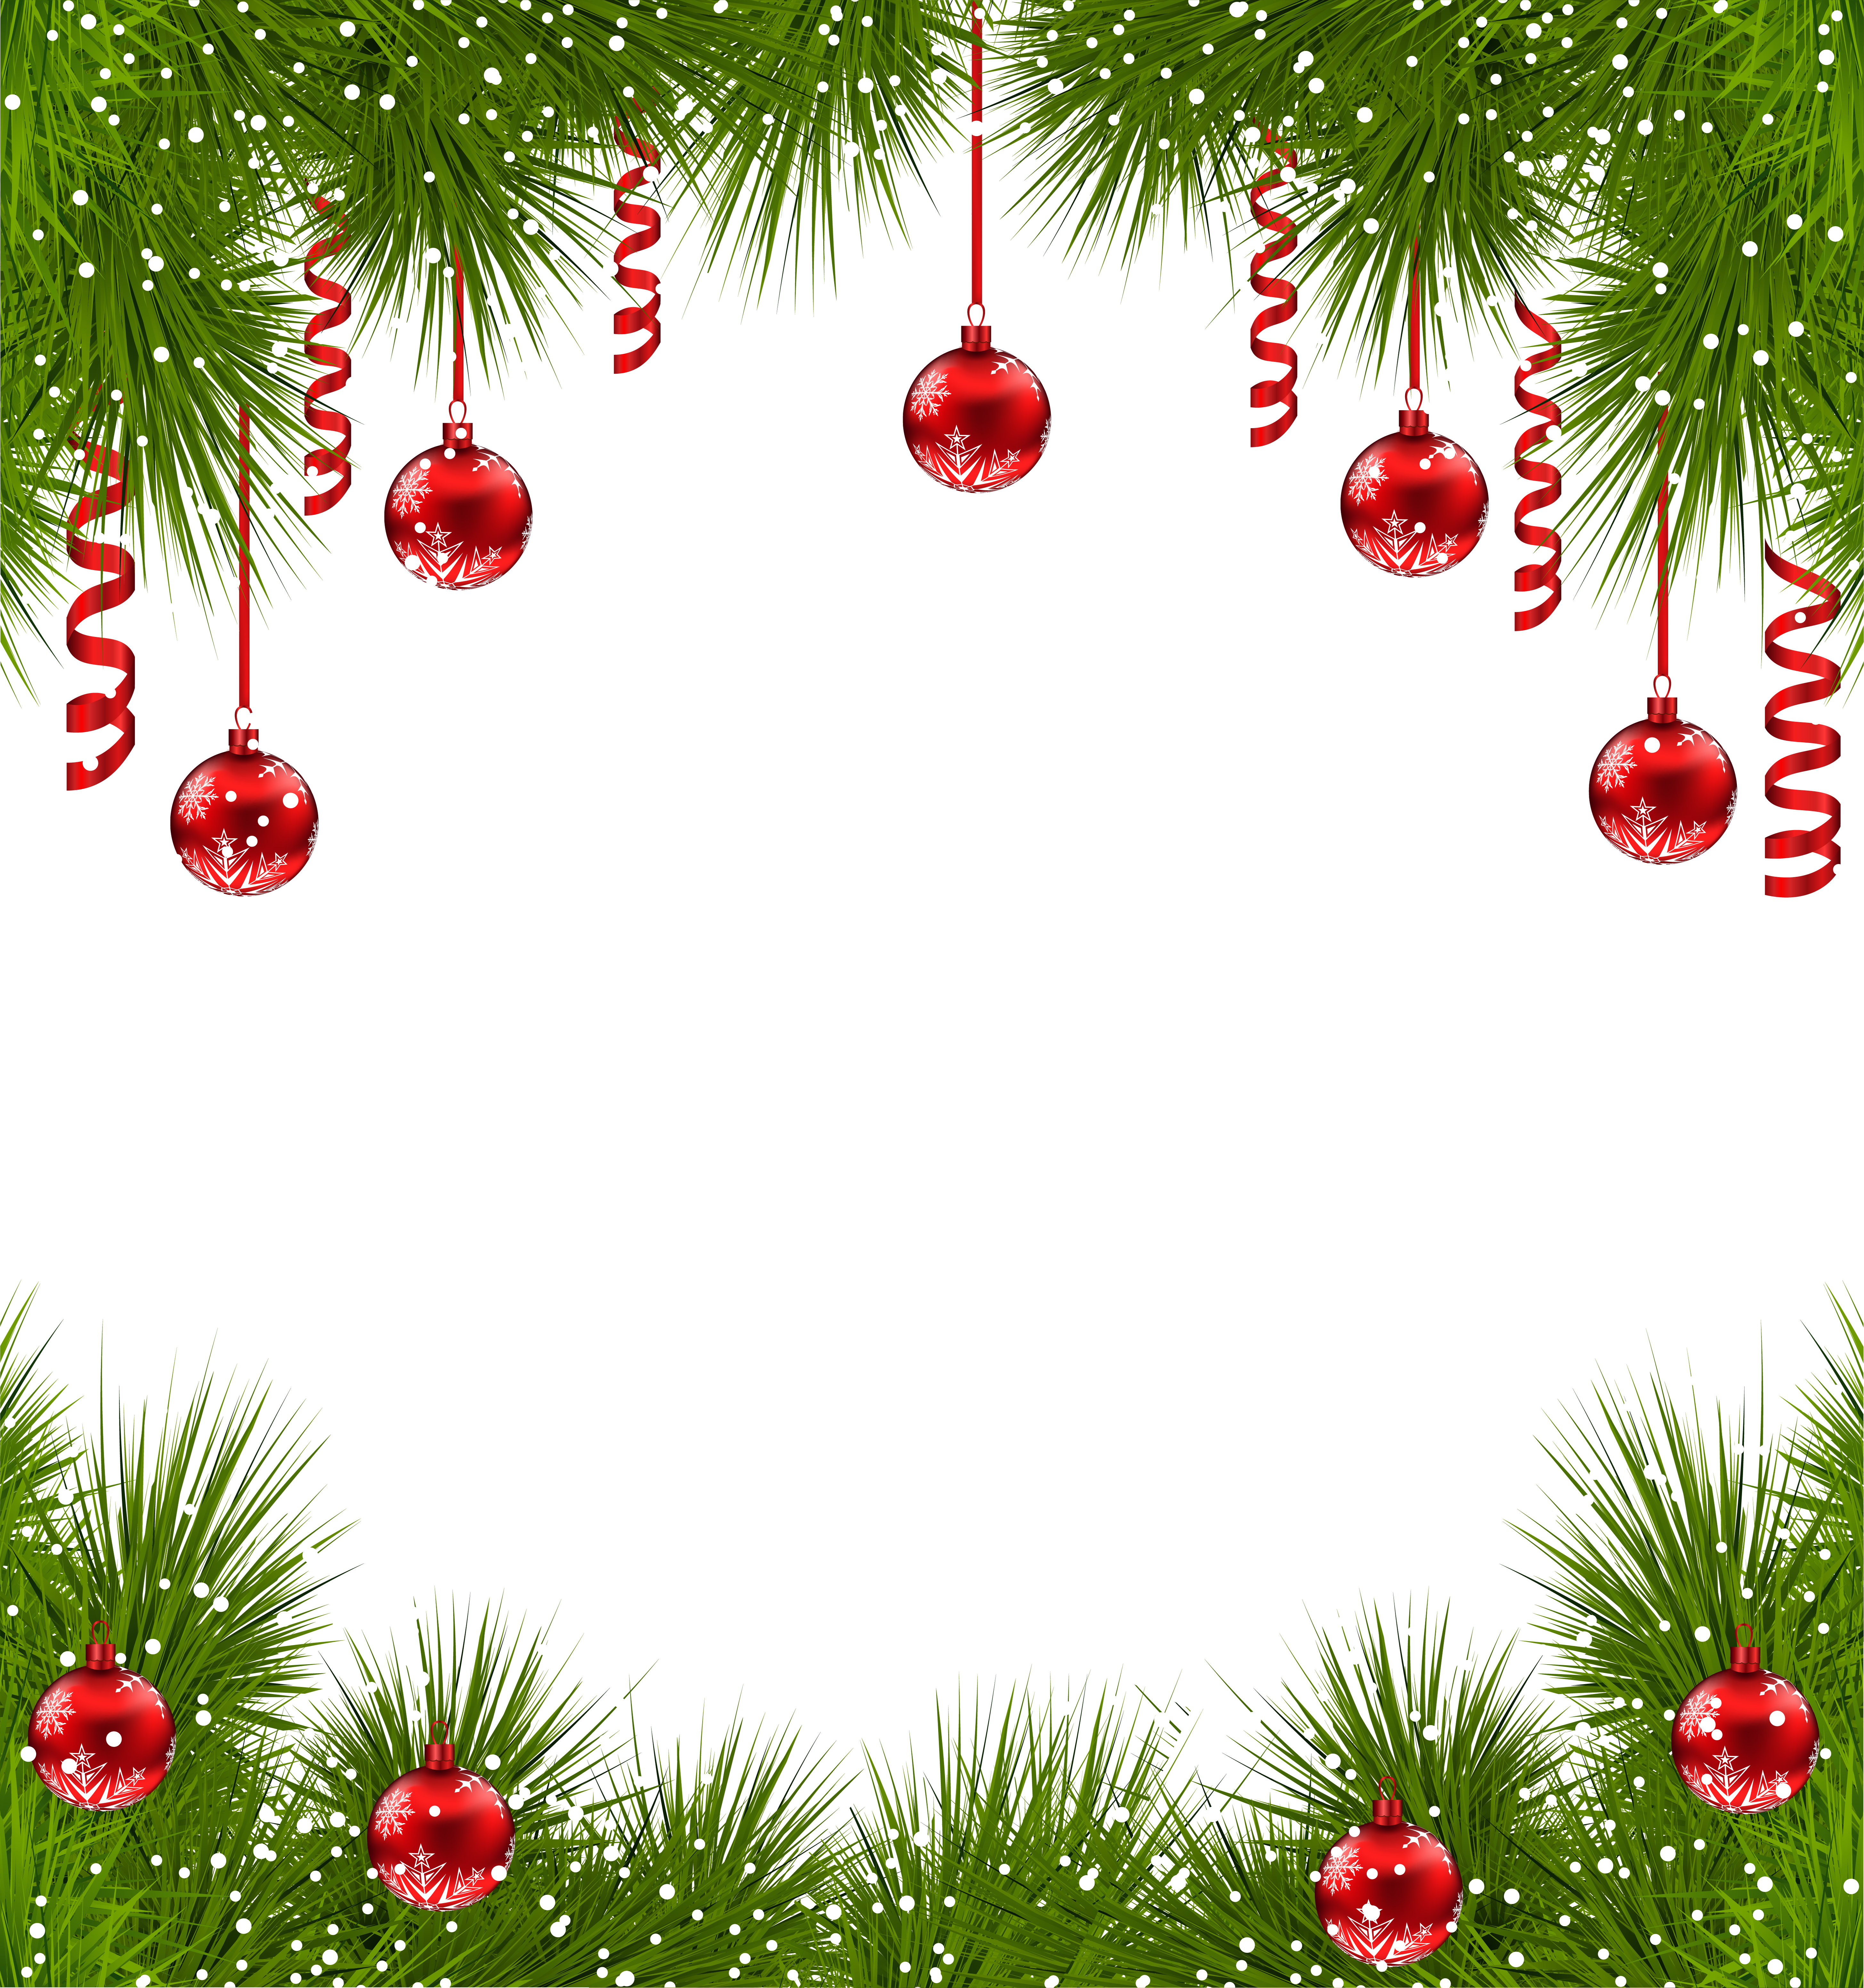 Christmas ornament border png. Transparent frame with red